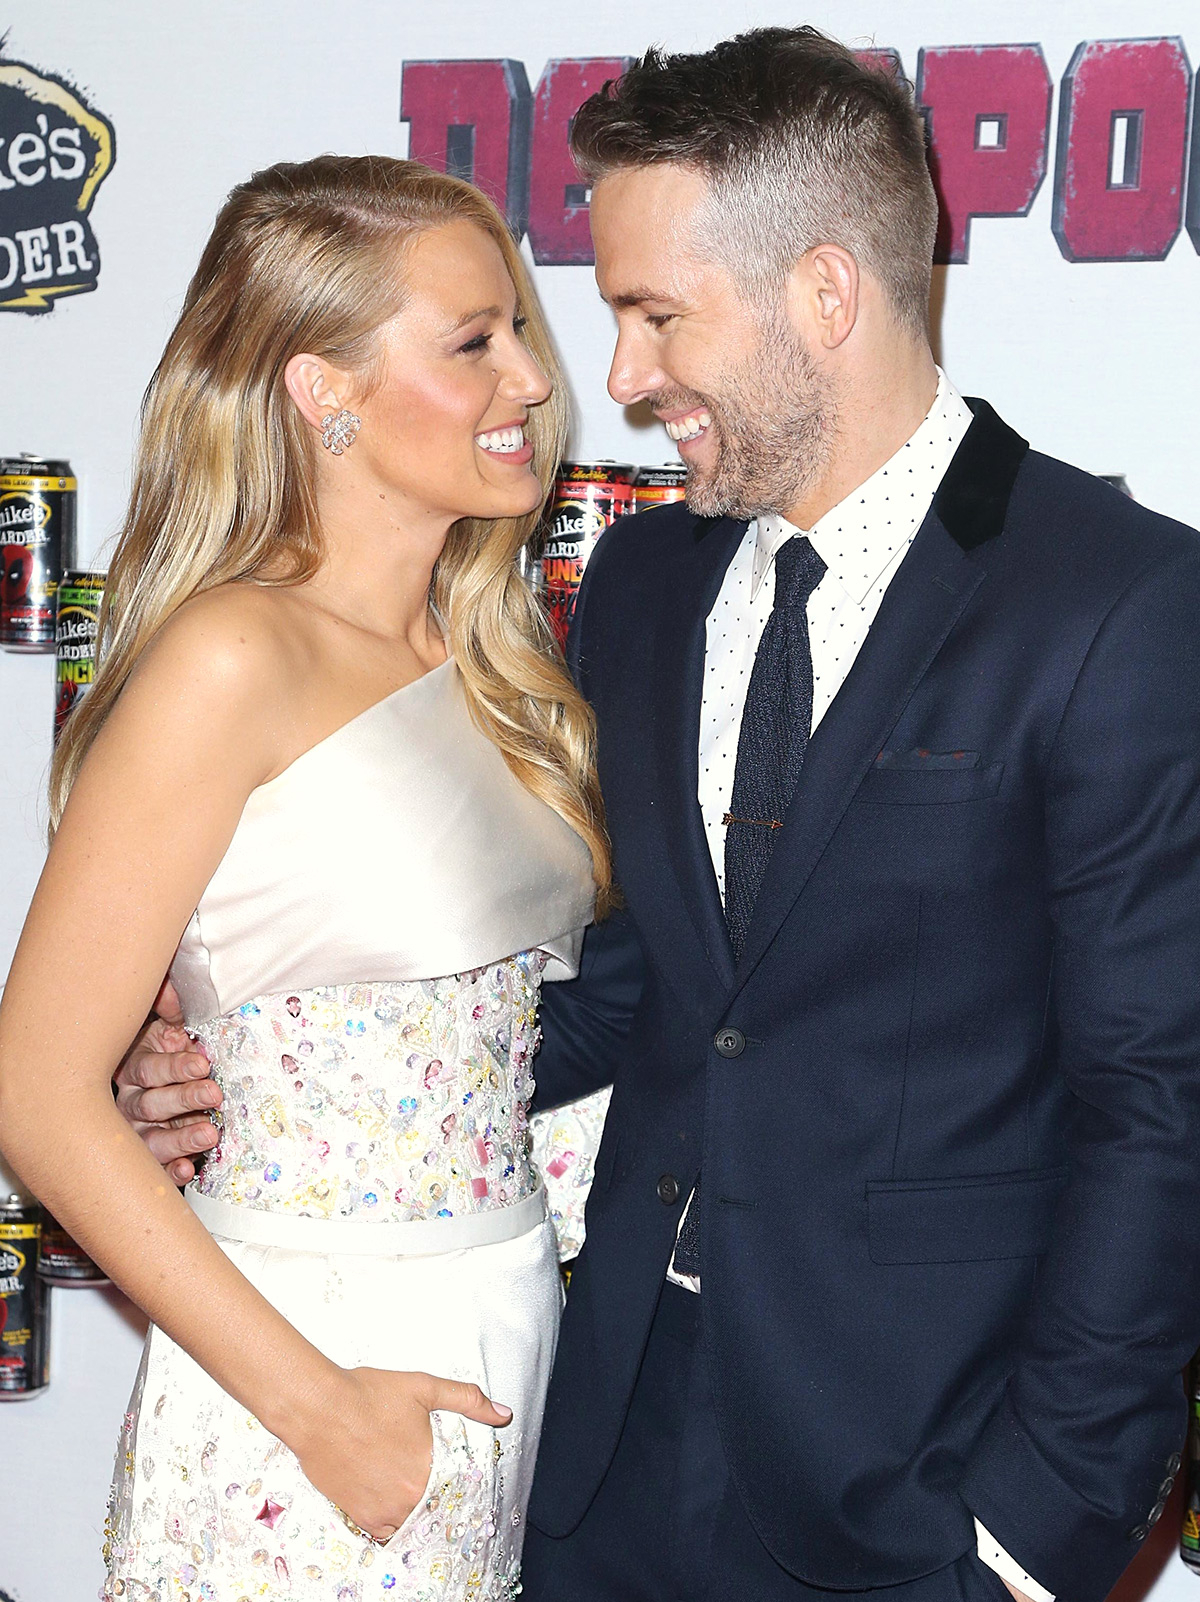 Blake Lively & Ryan Reynolds